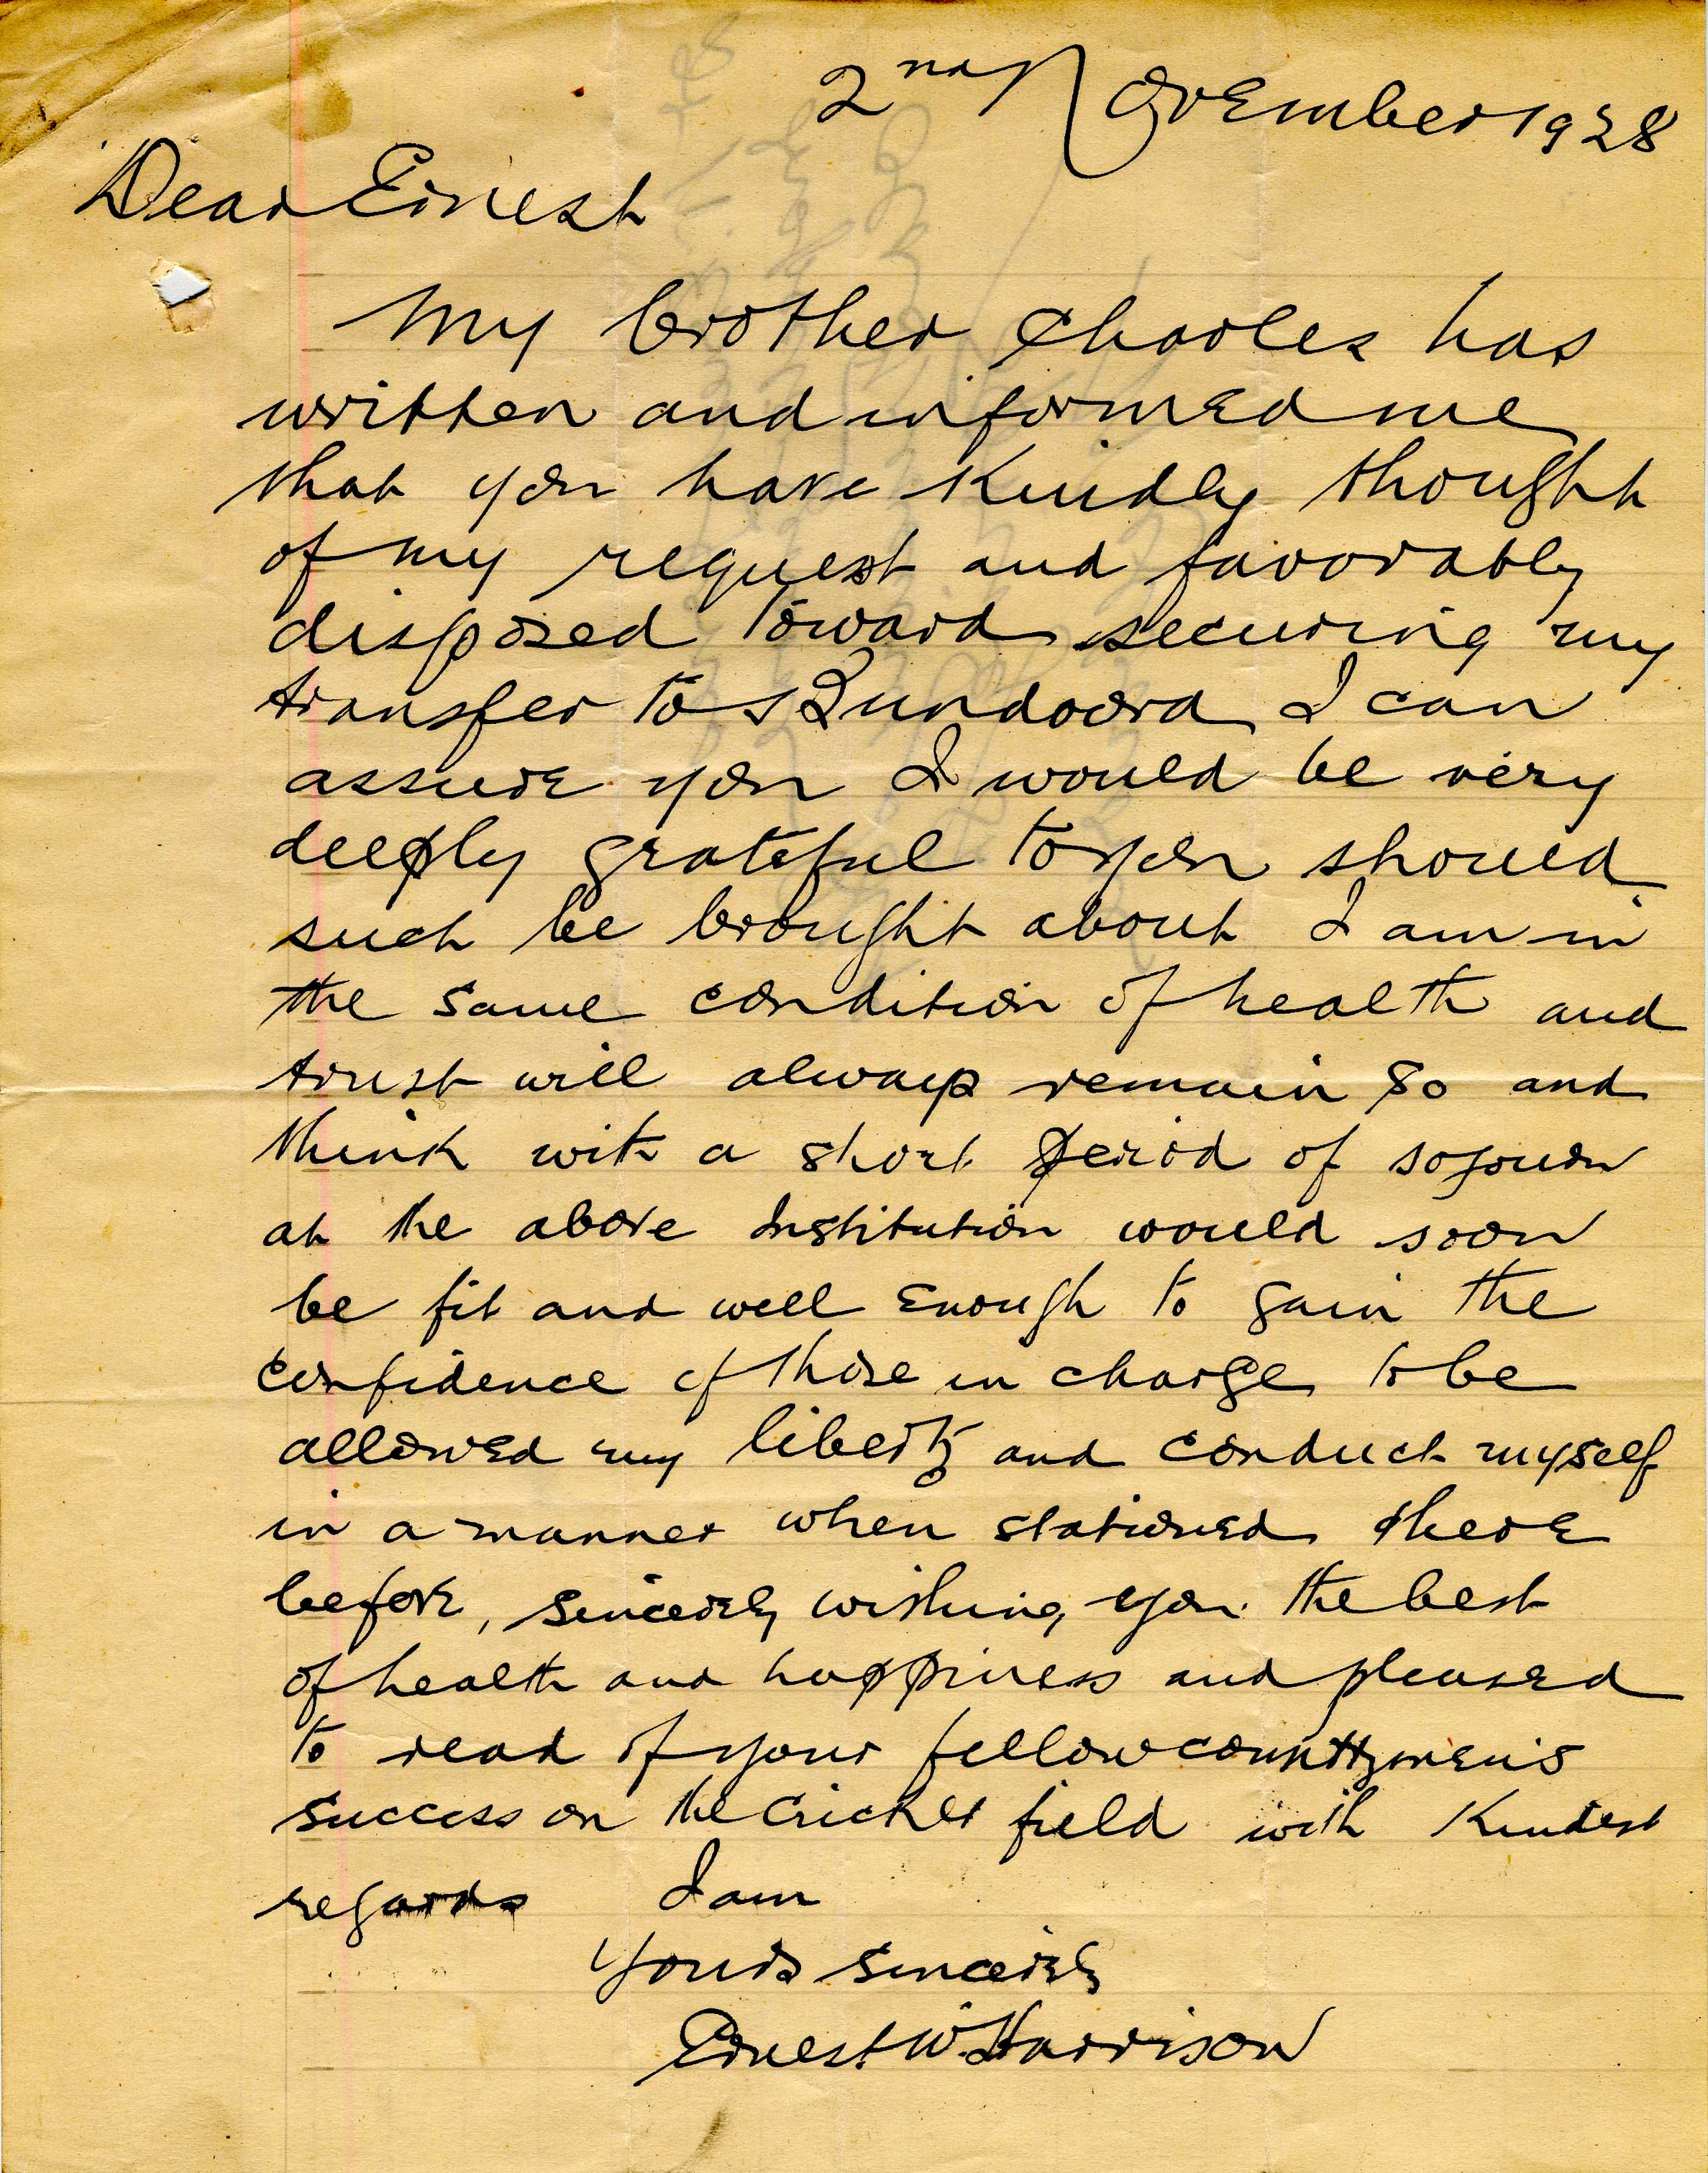 First page of letter from EW Harrison to Dr Jones